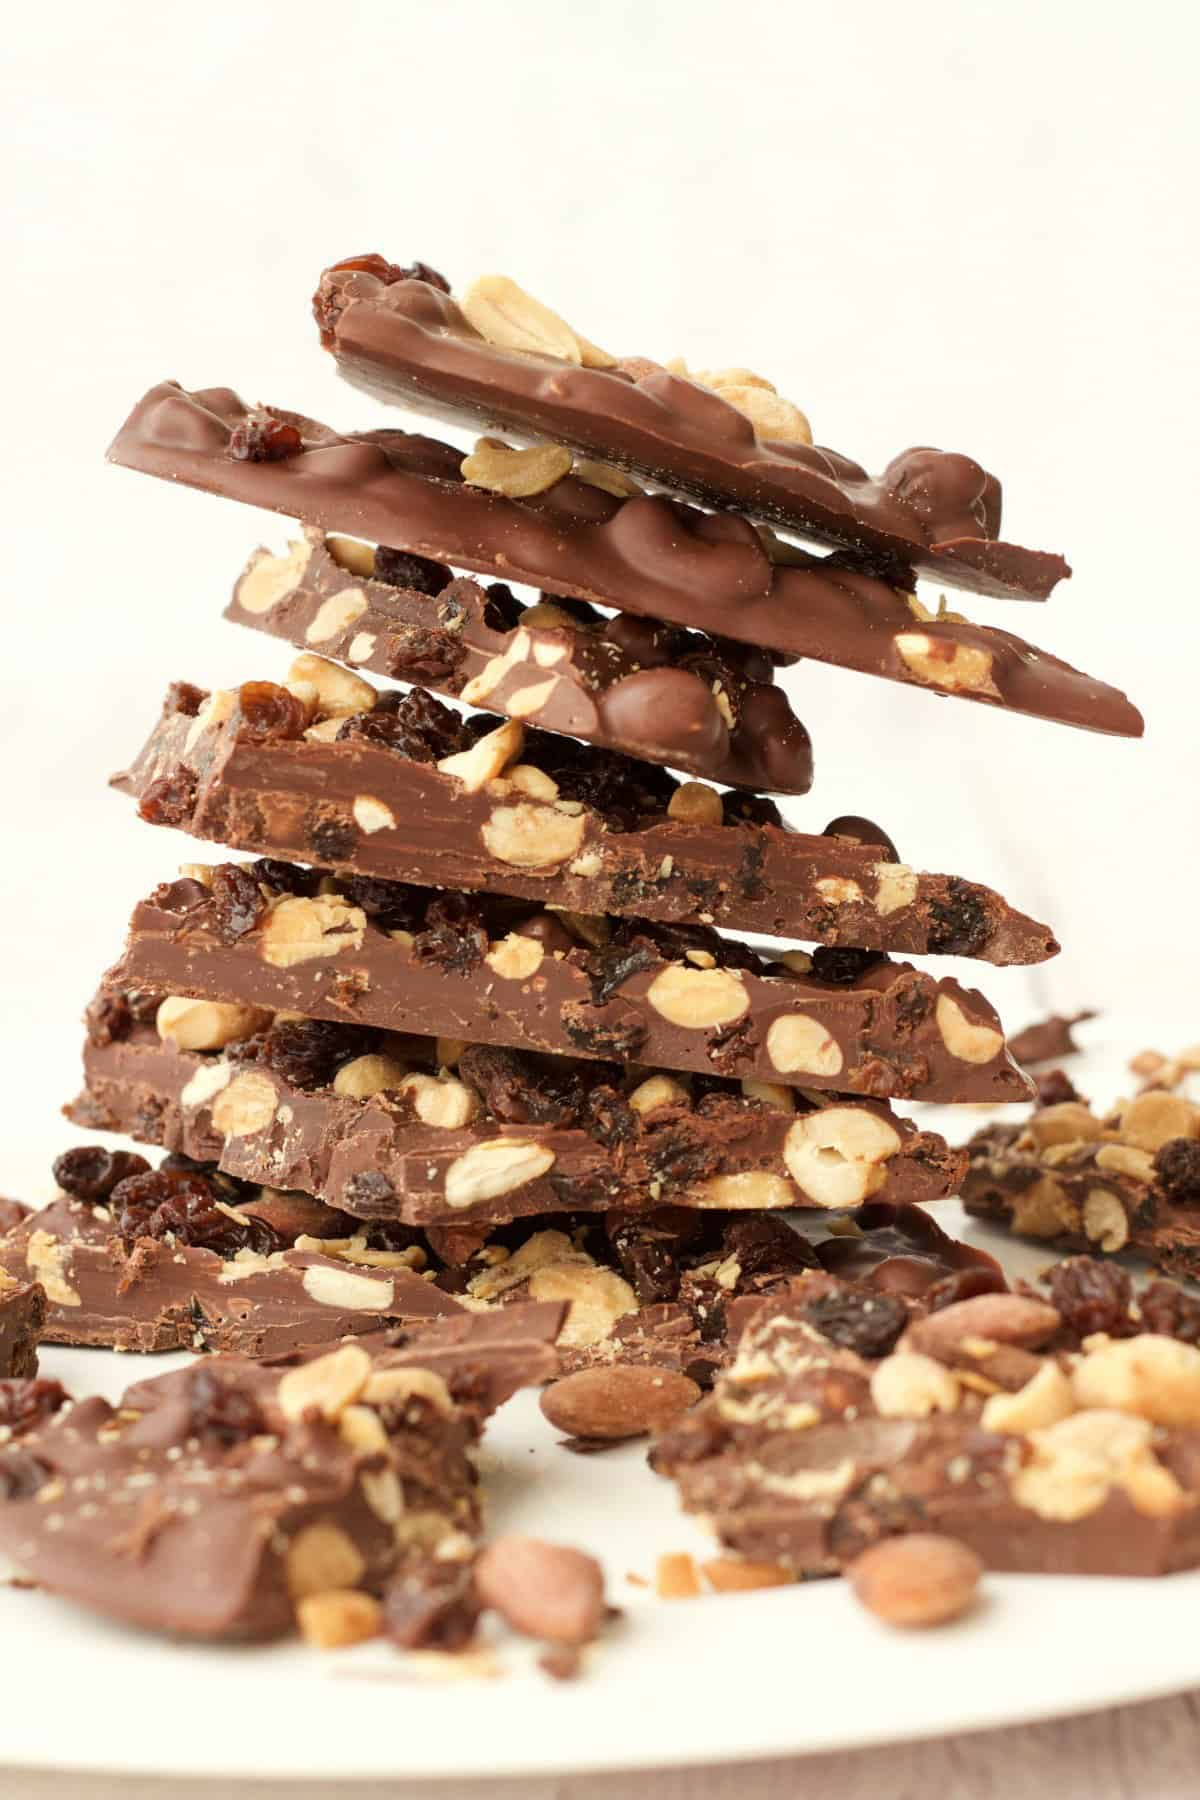 Stack of chocolate bark on a white plate.